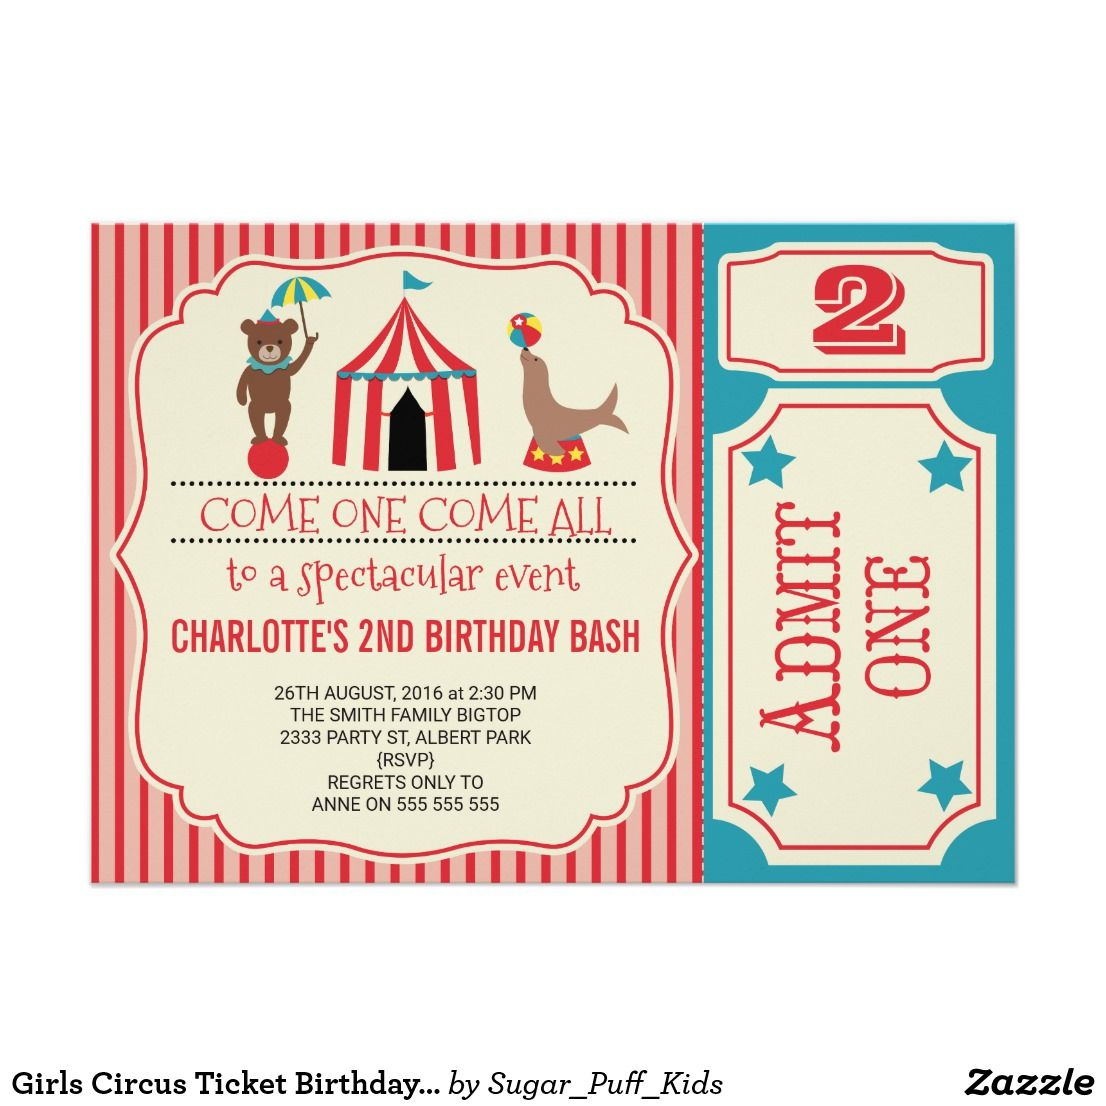 Girls Circus Ticket Birthday Party Invitation | Pinterest | Circus ...